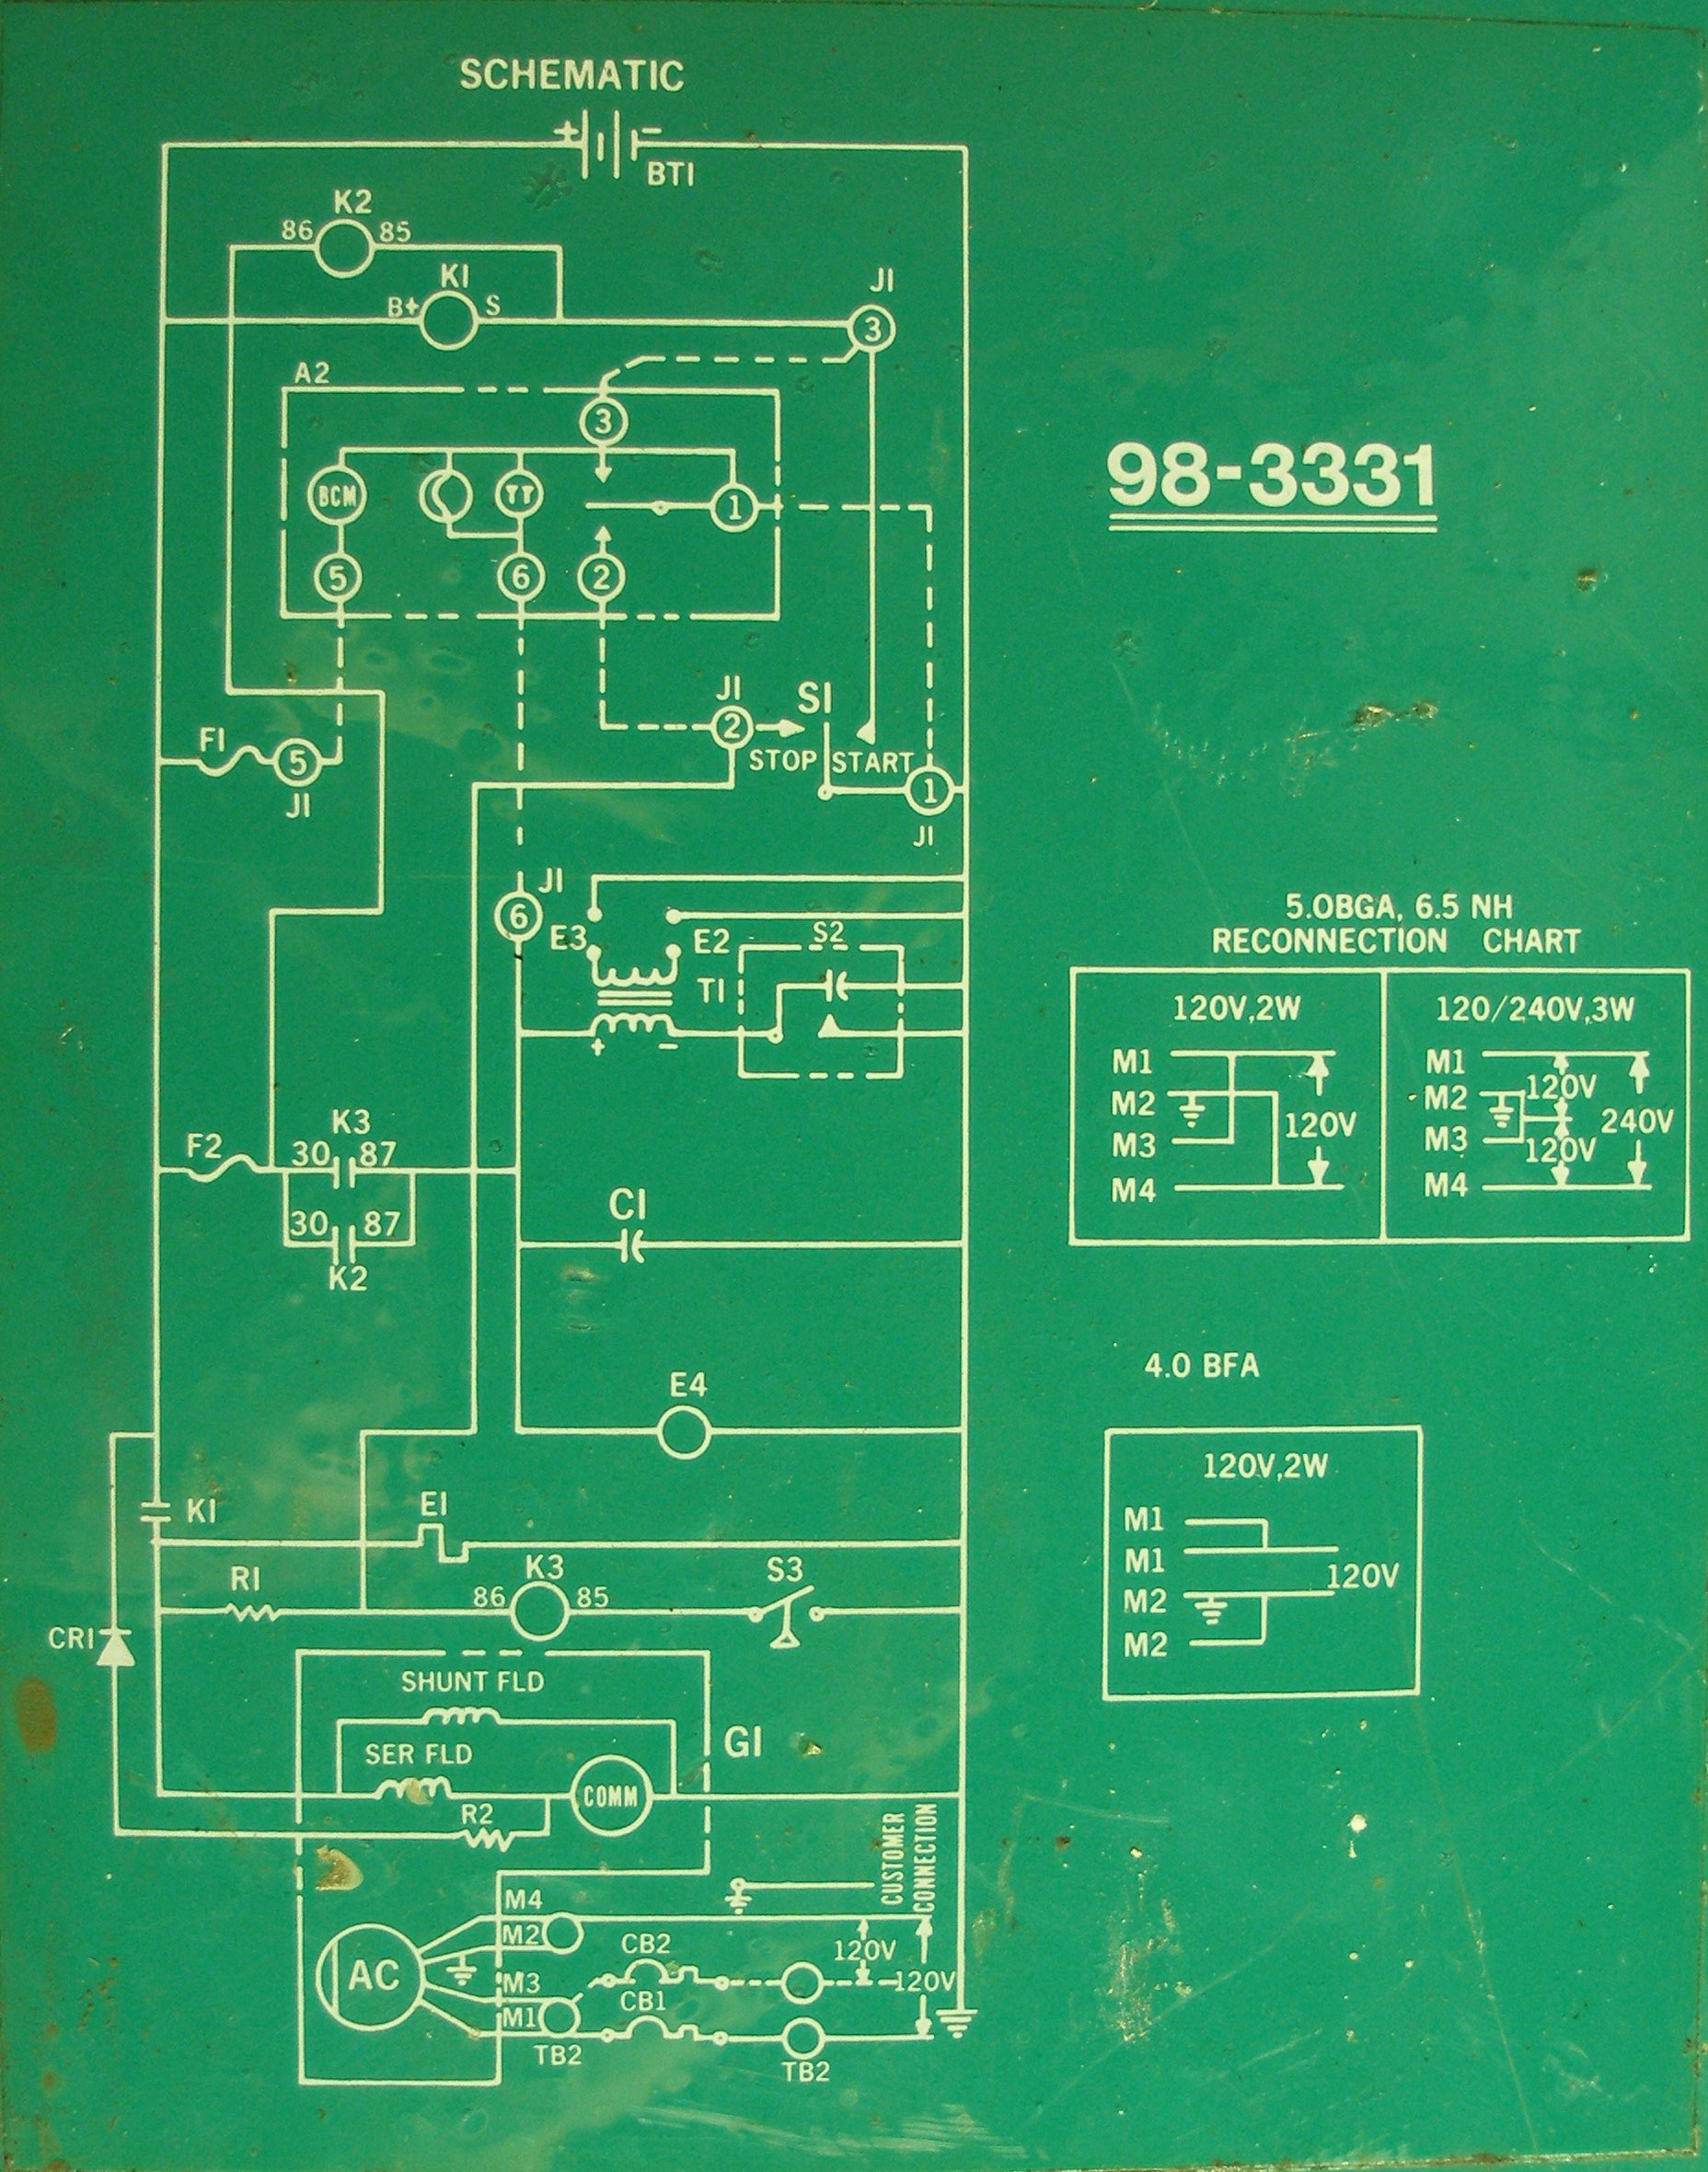 hight resolution of bfa bga nh wiring 01b wiring diagram onan 4 0 bfa onan commercial 4500 wiring diagram at cita asia